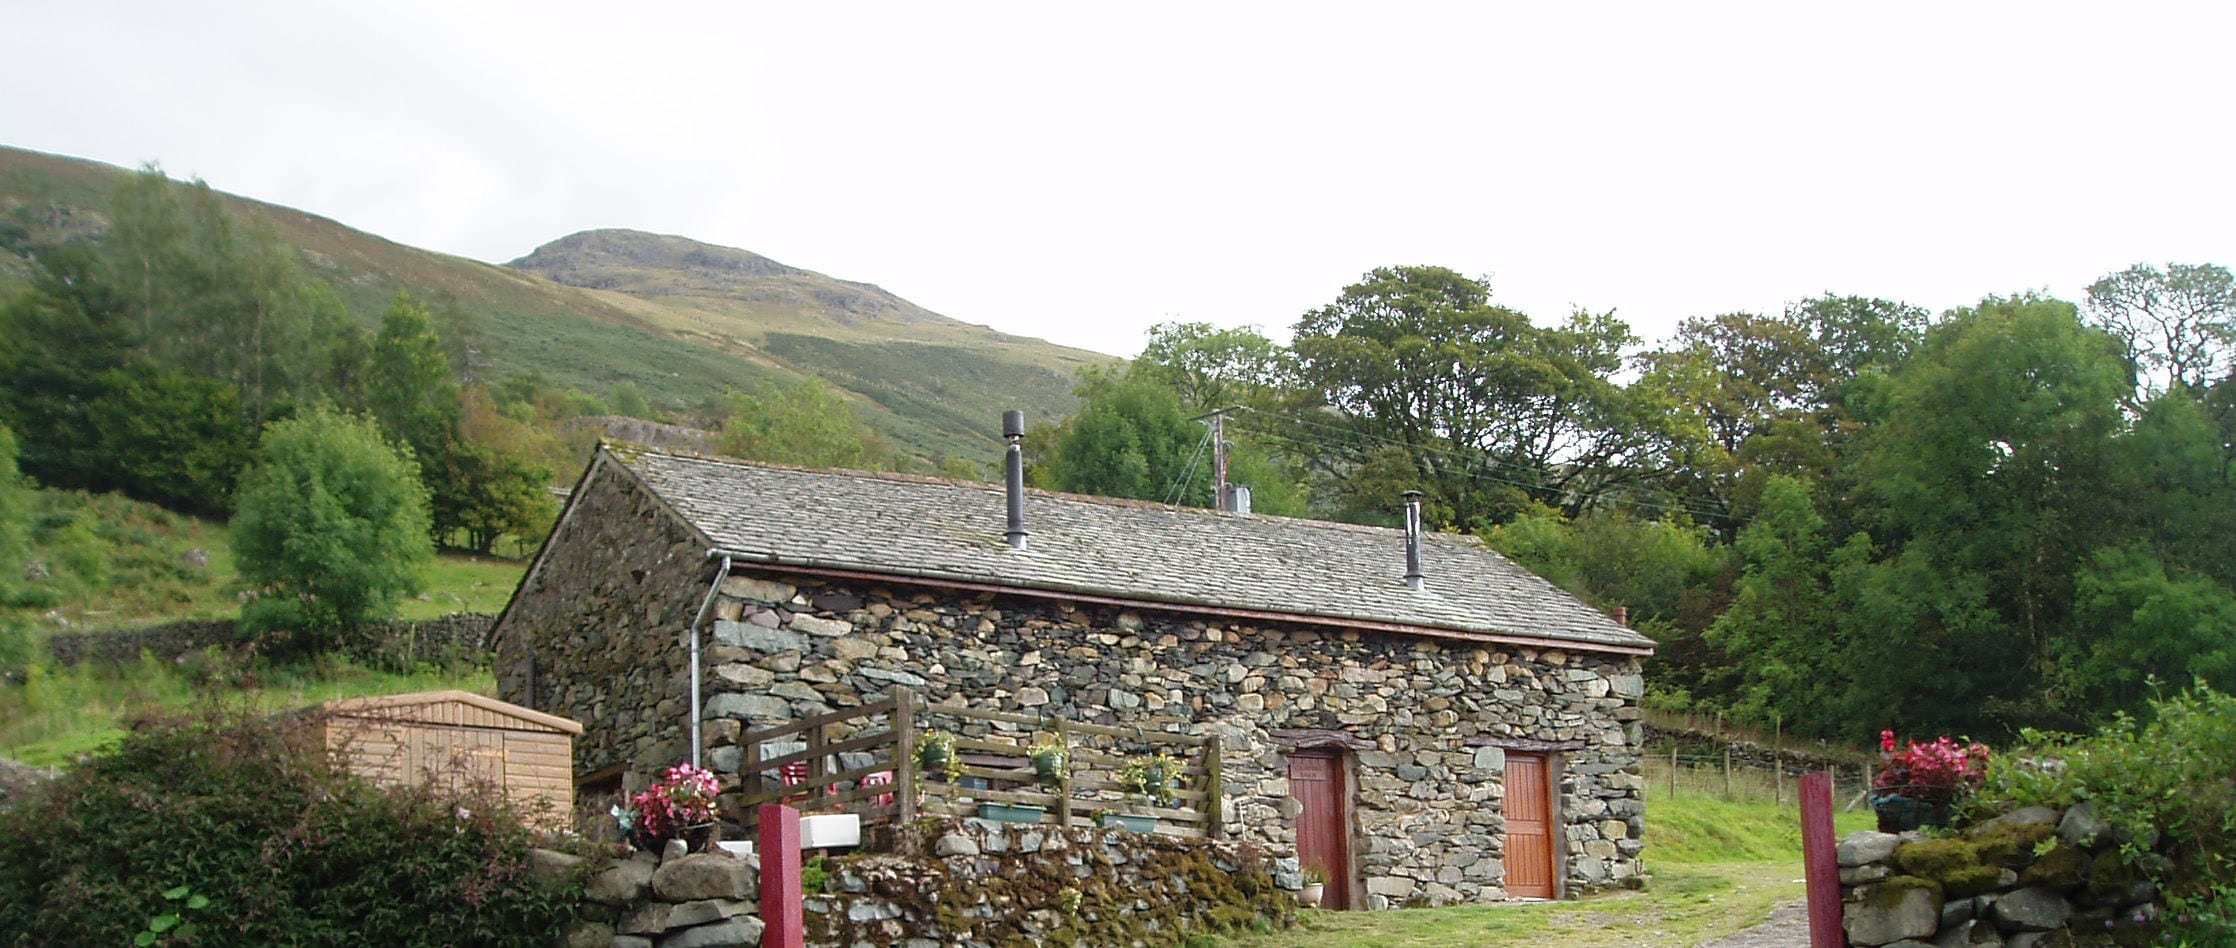 Fisher Gill Camping Barn ideal for D of E expeditions in the Lake District